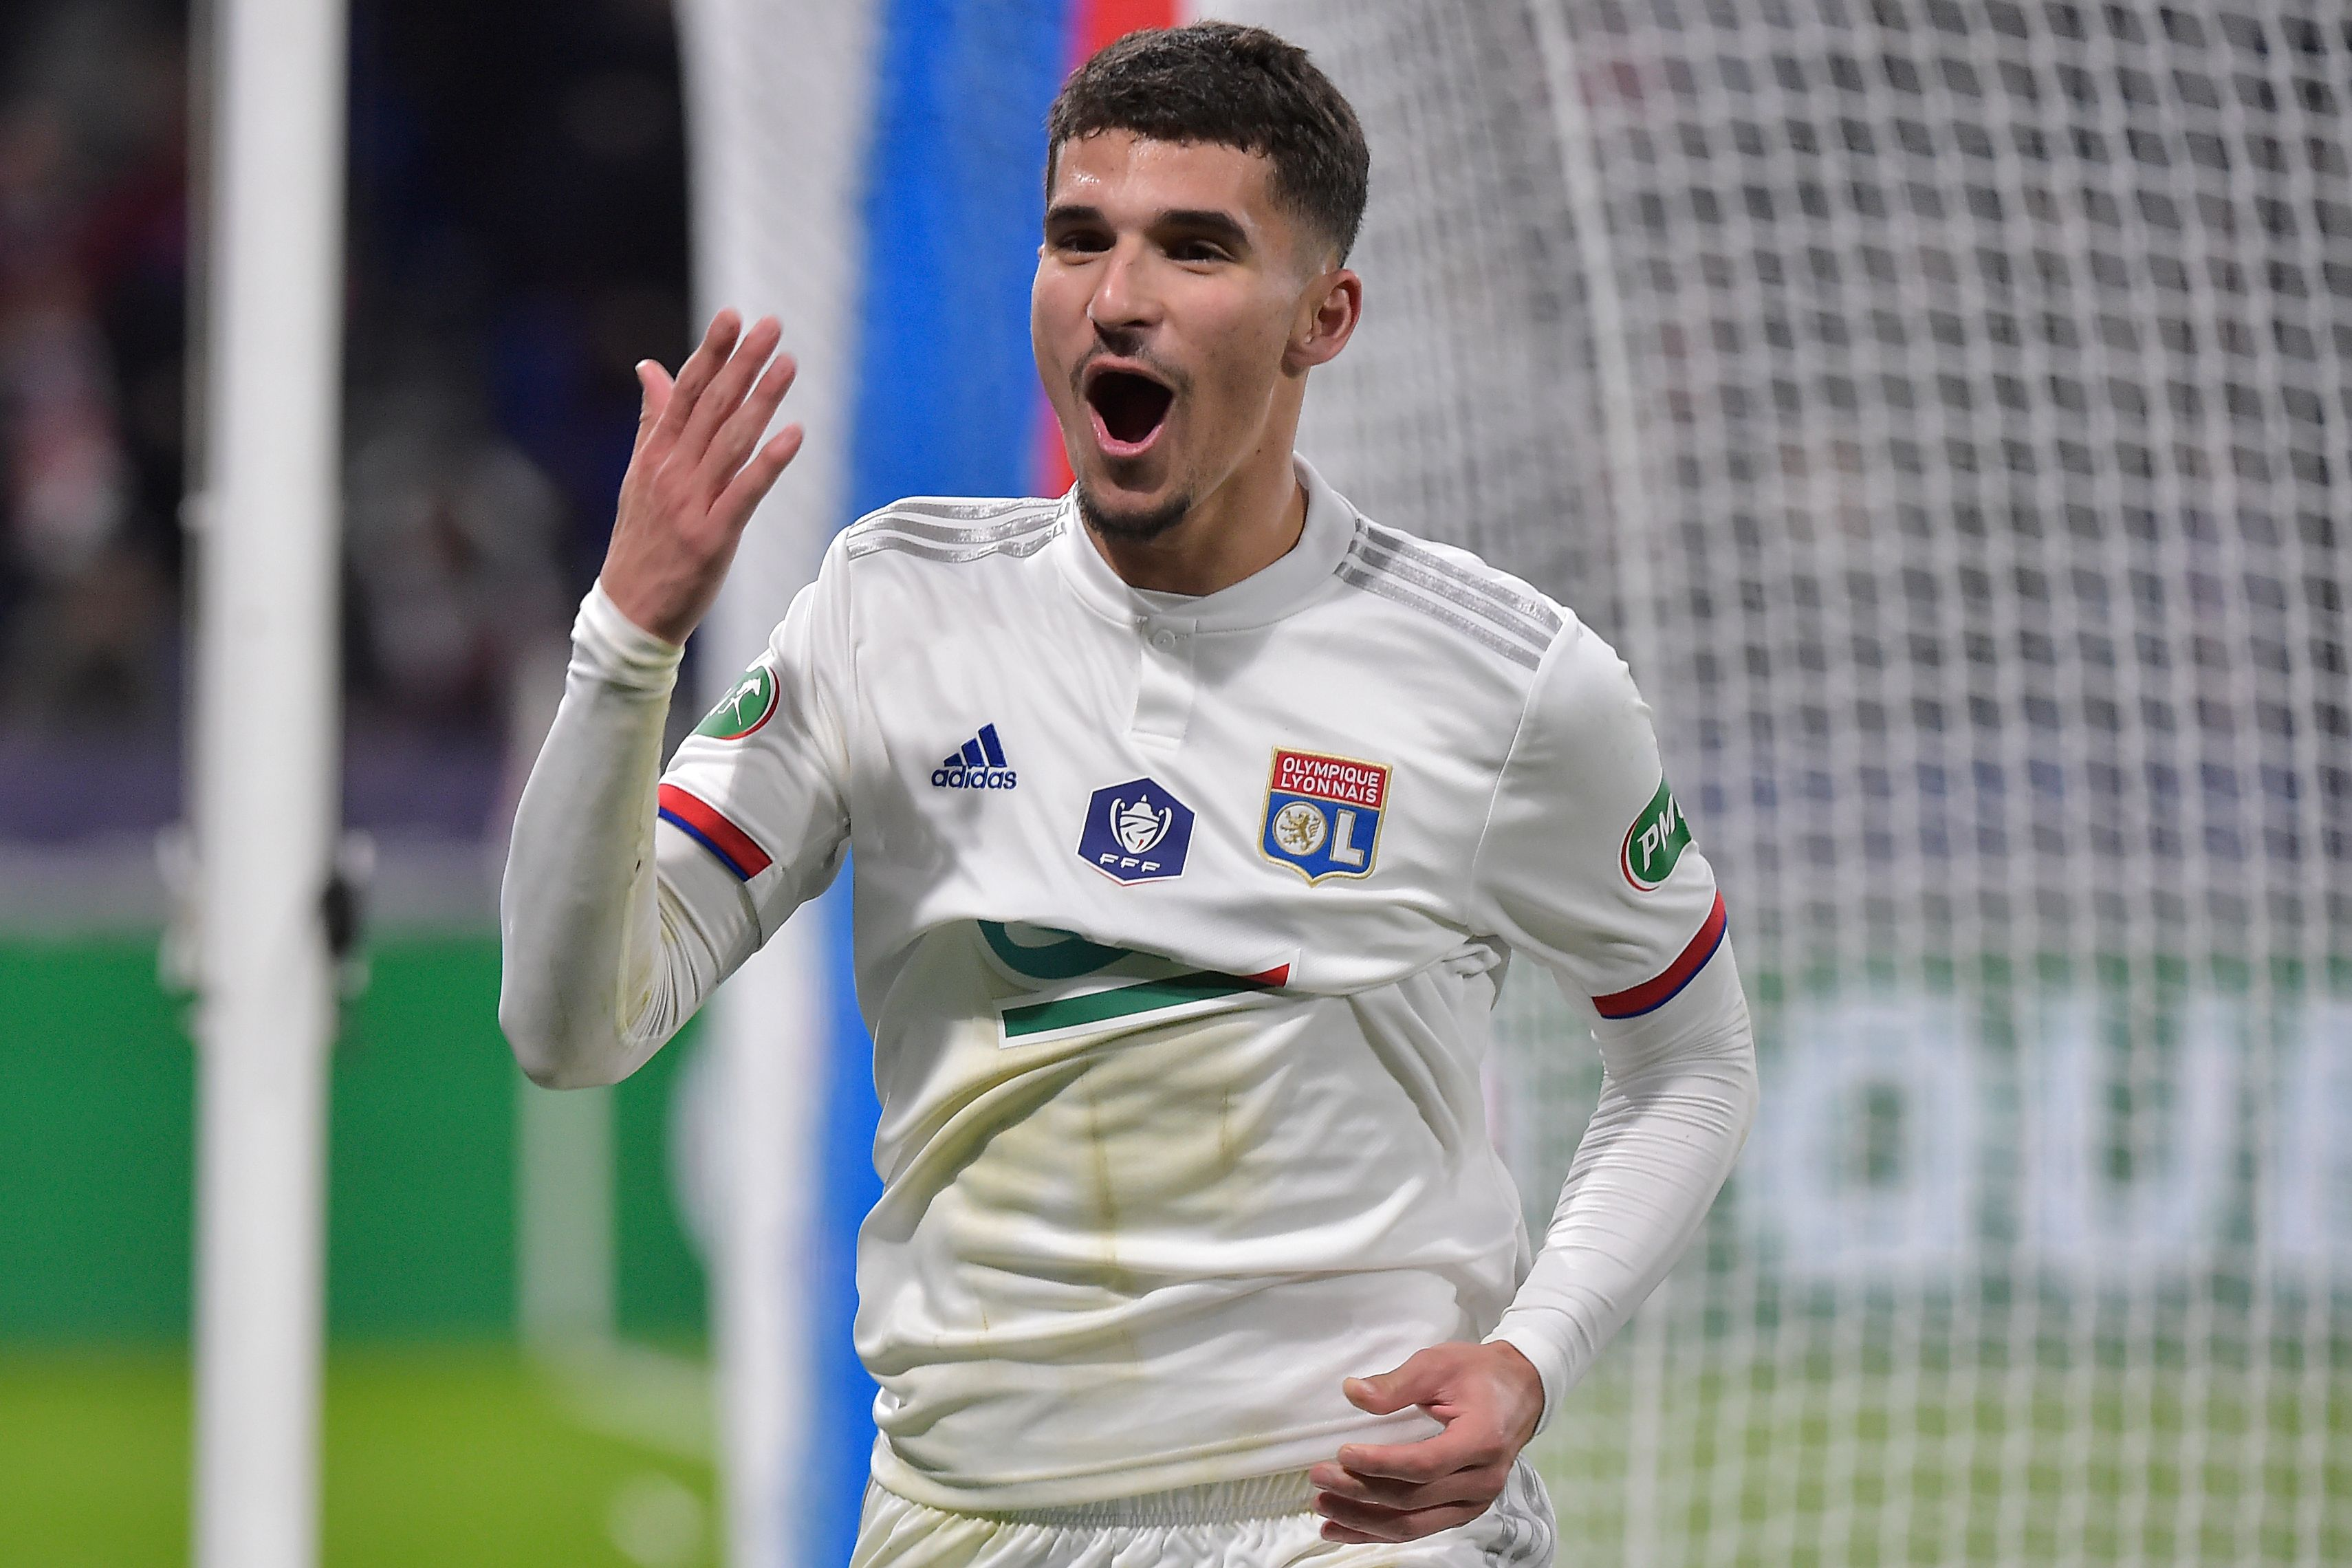 Liverpool persegue Houssem Aouar